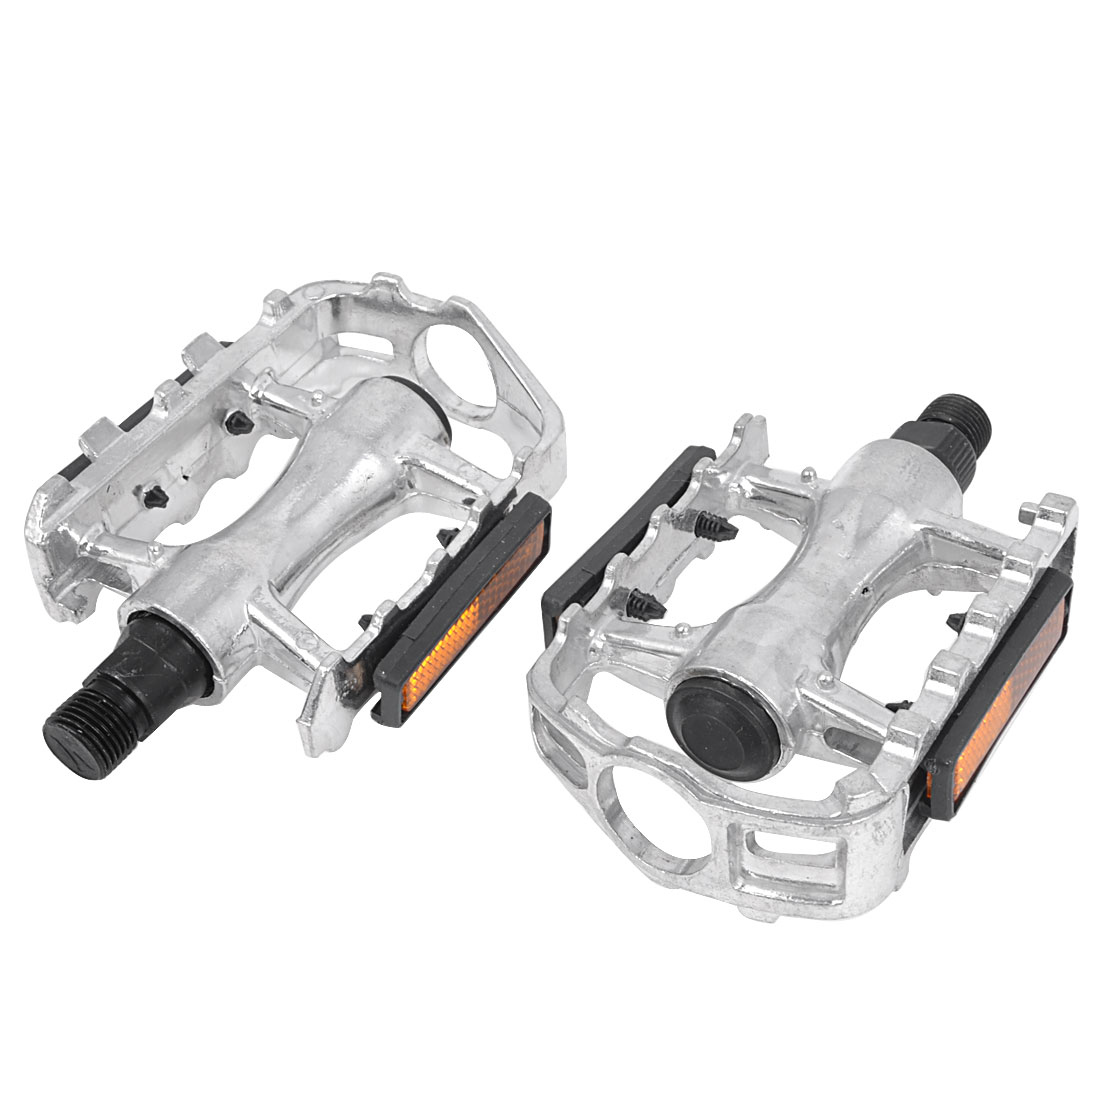 Mountain Road Bike Bicycle Silver Tone Aluminium Platform Pedals 2pcs